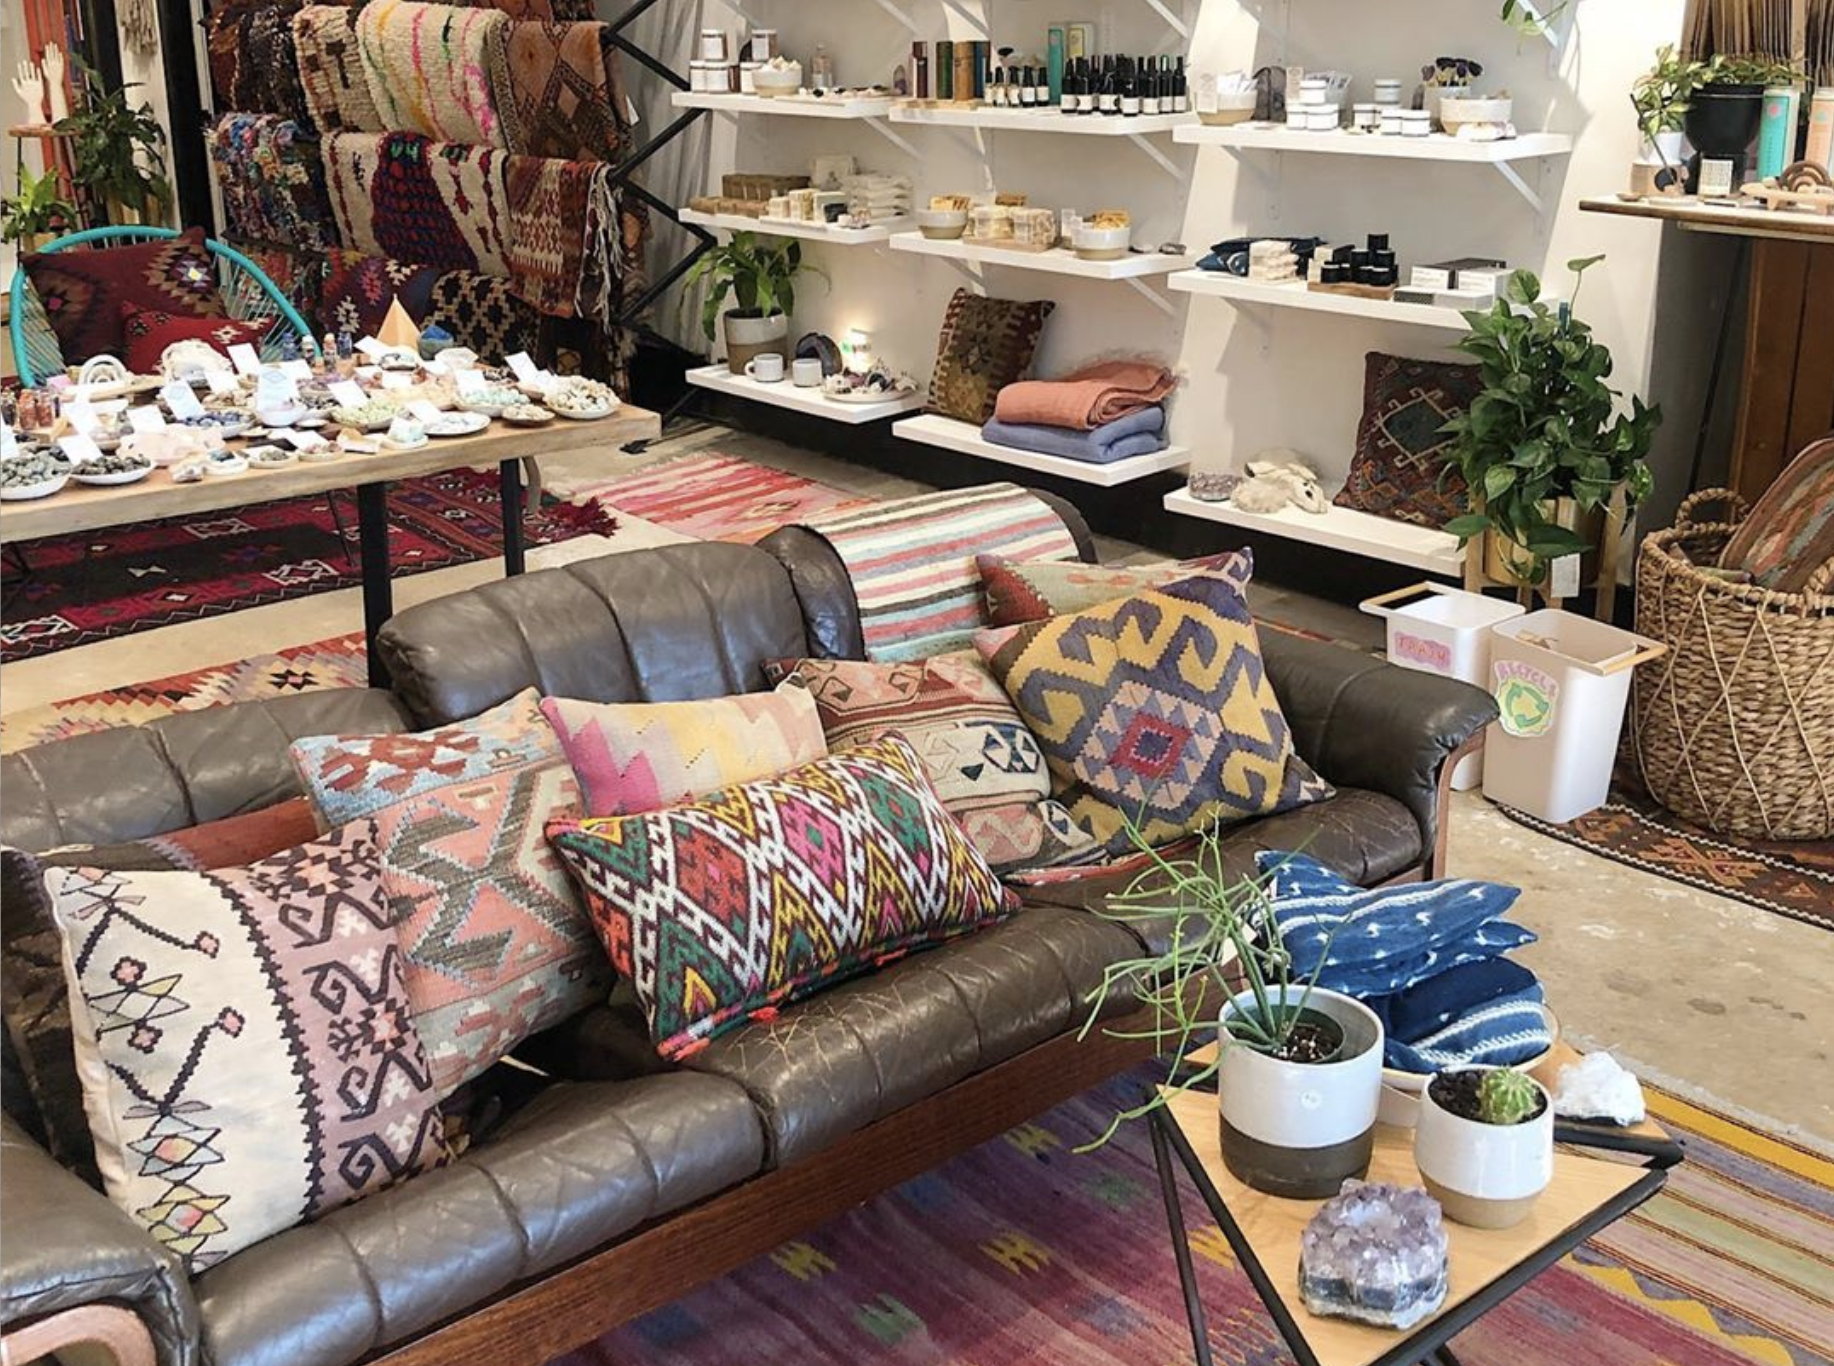 A leather couch with lots of throw pillows. A triangular side table has ceramic planters. The shop has rugs hanging in the back with shelves that have ceramics.